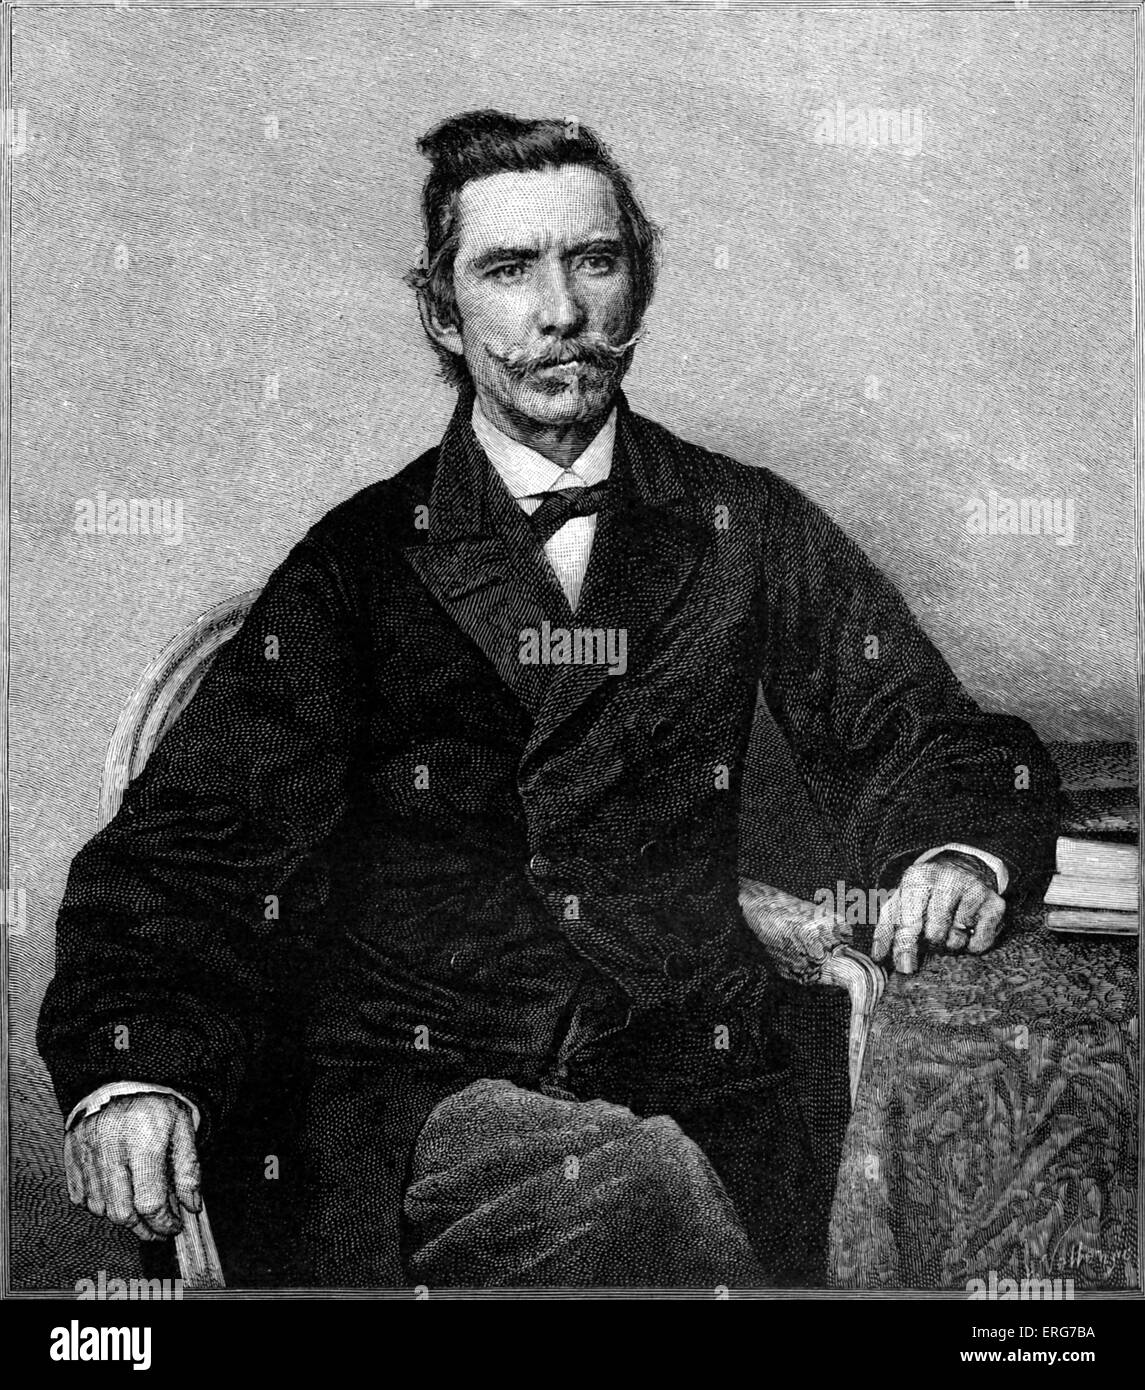 Rear-Admiral Raphael Semmes, from a photograph taken in England after the loss of CSS Alabama, which he captained - Stock Image